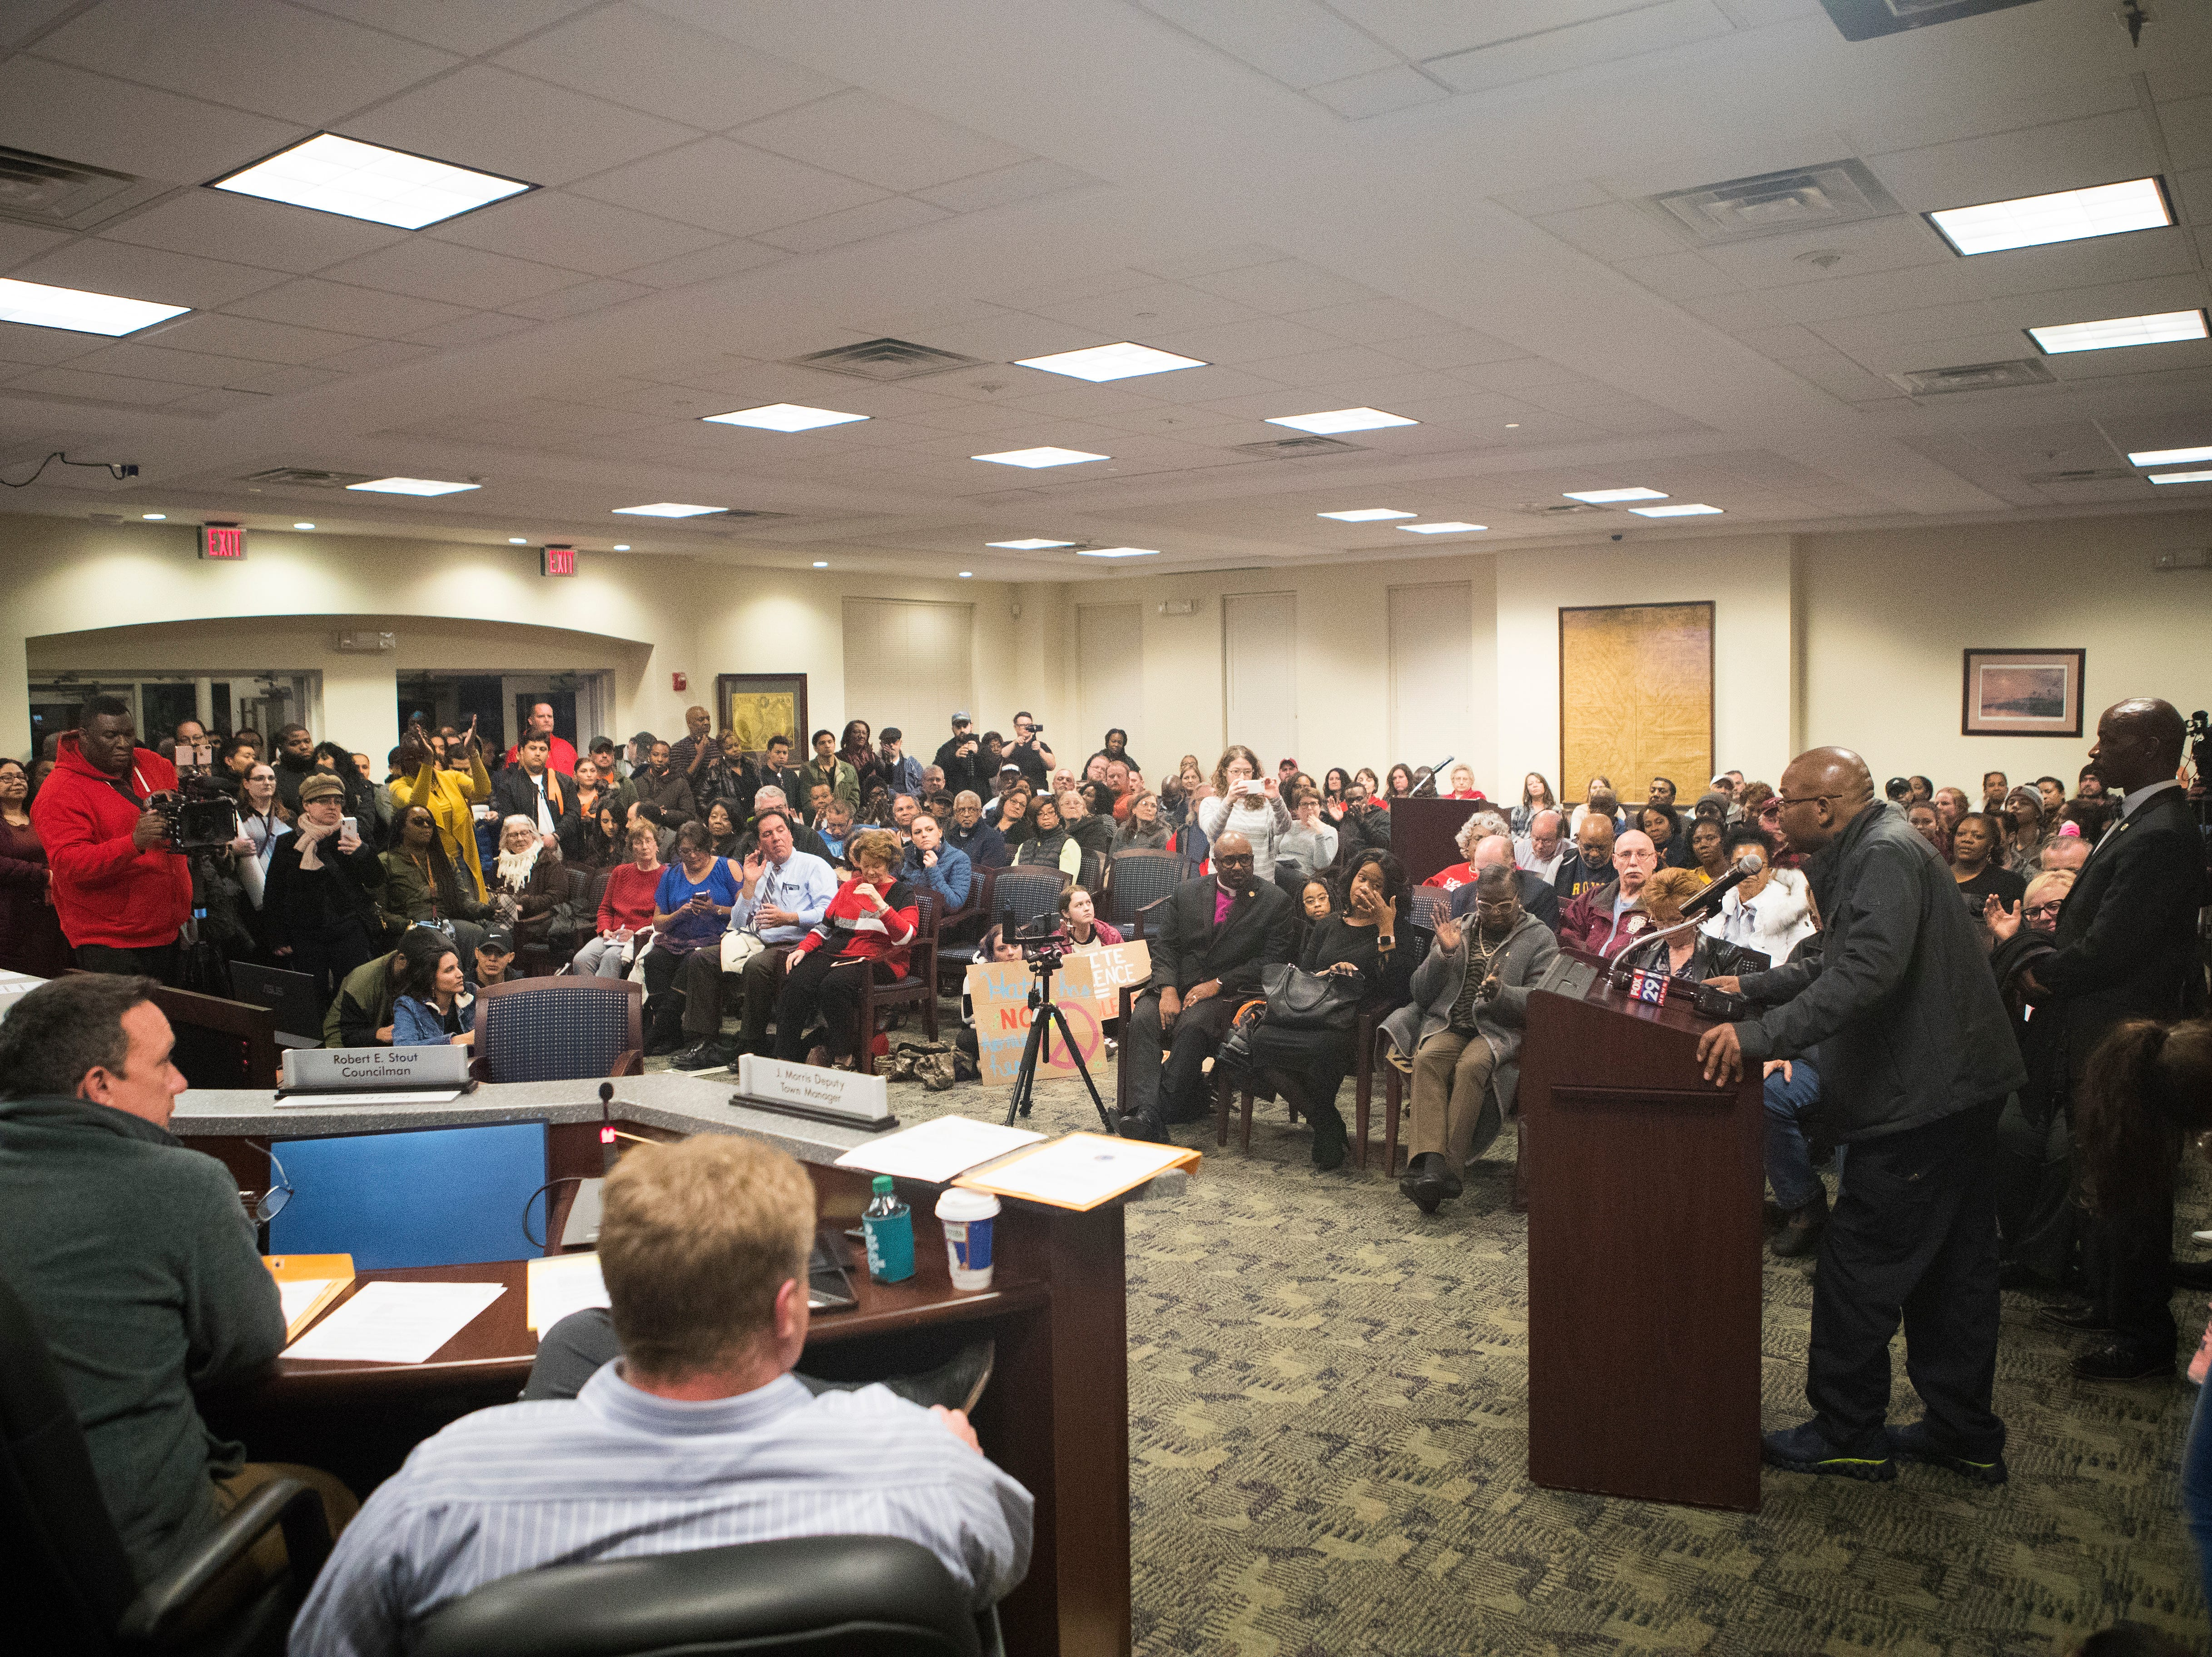 The Middletown City Council Chambers were standing room only as the public came out to oppose the recent Hummers Parade in Middletown Monday night.